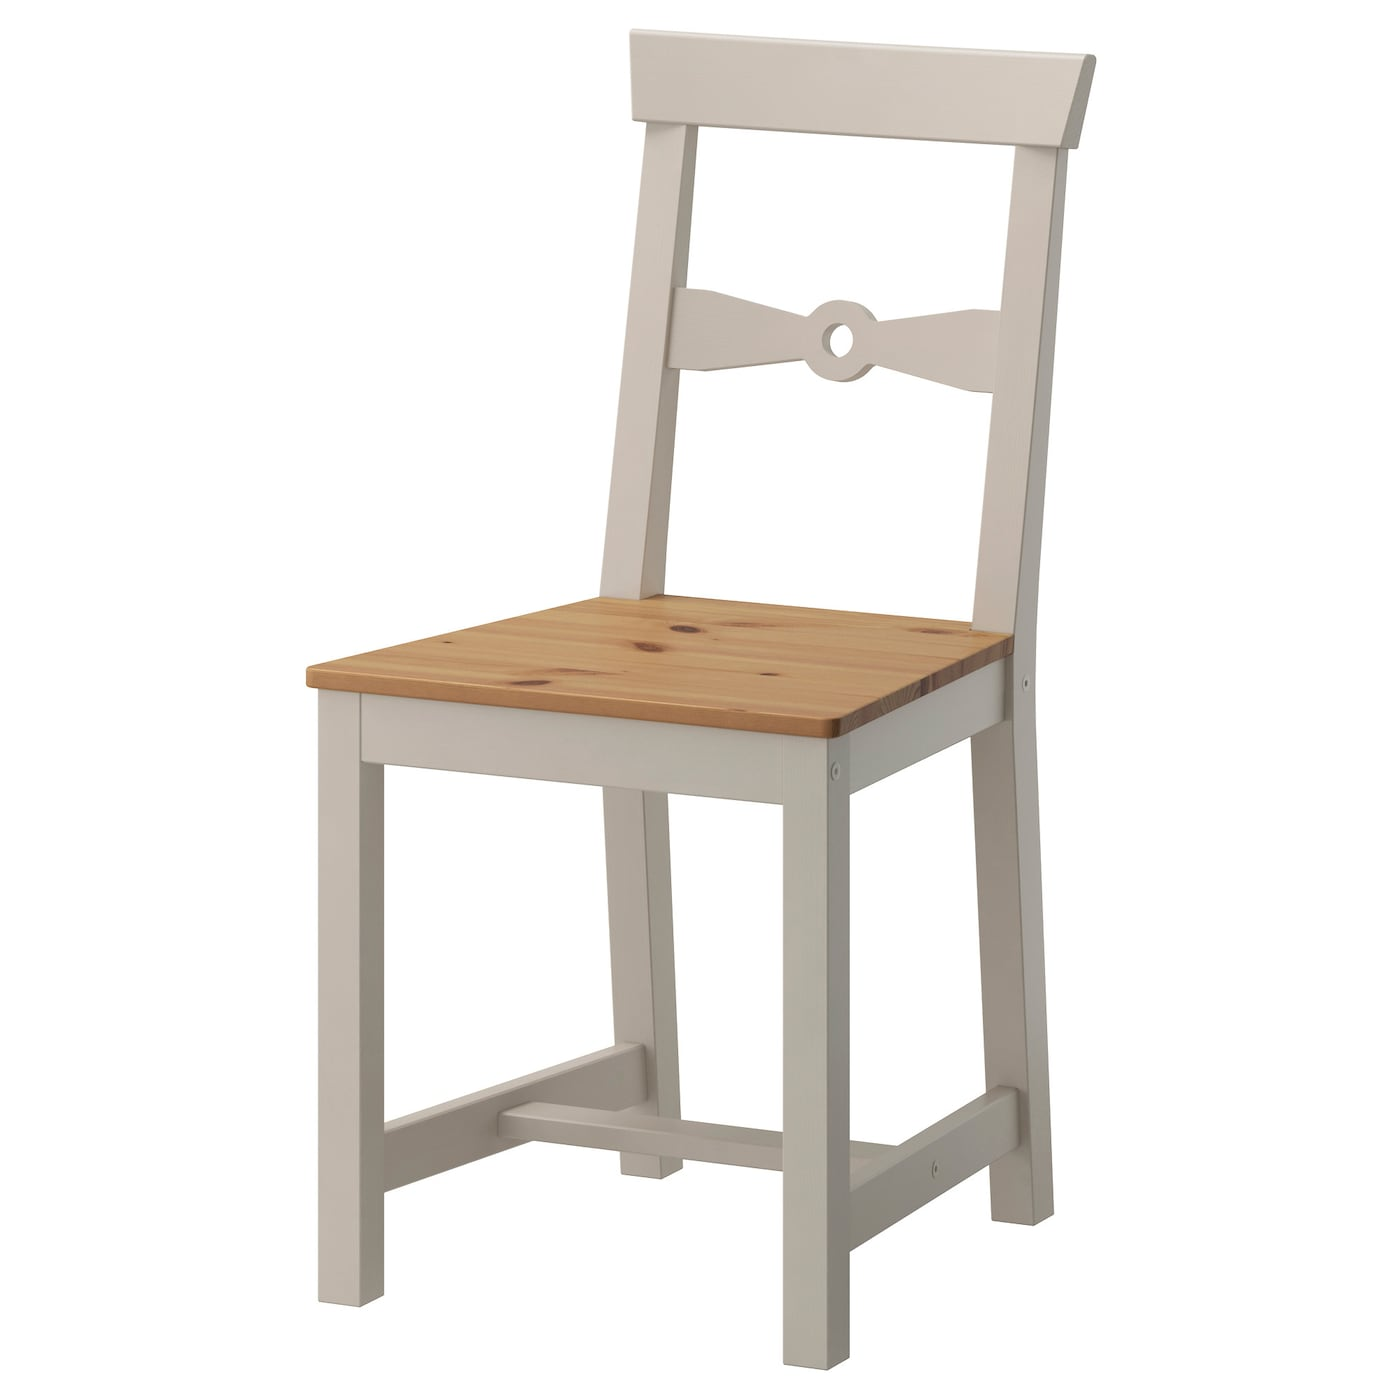 Chairs, Stools & Benches | IKEA Ireland – Dublin